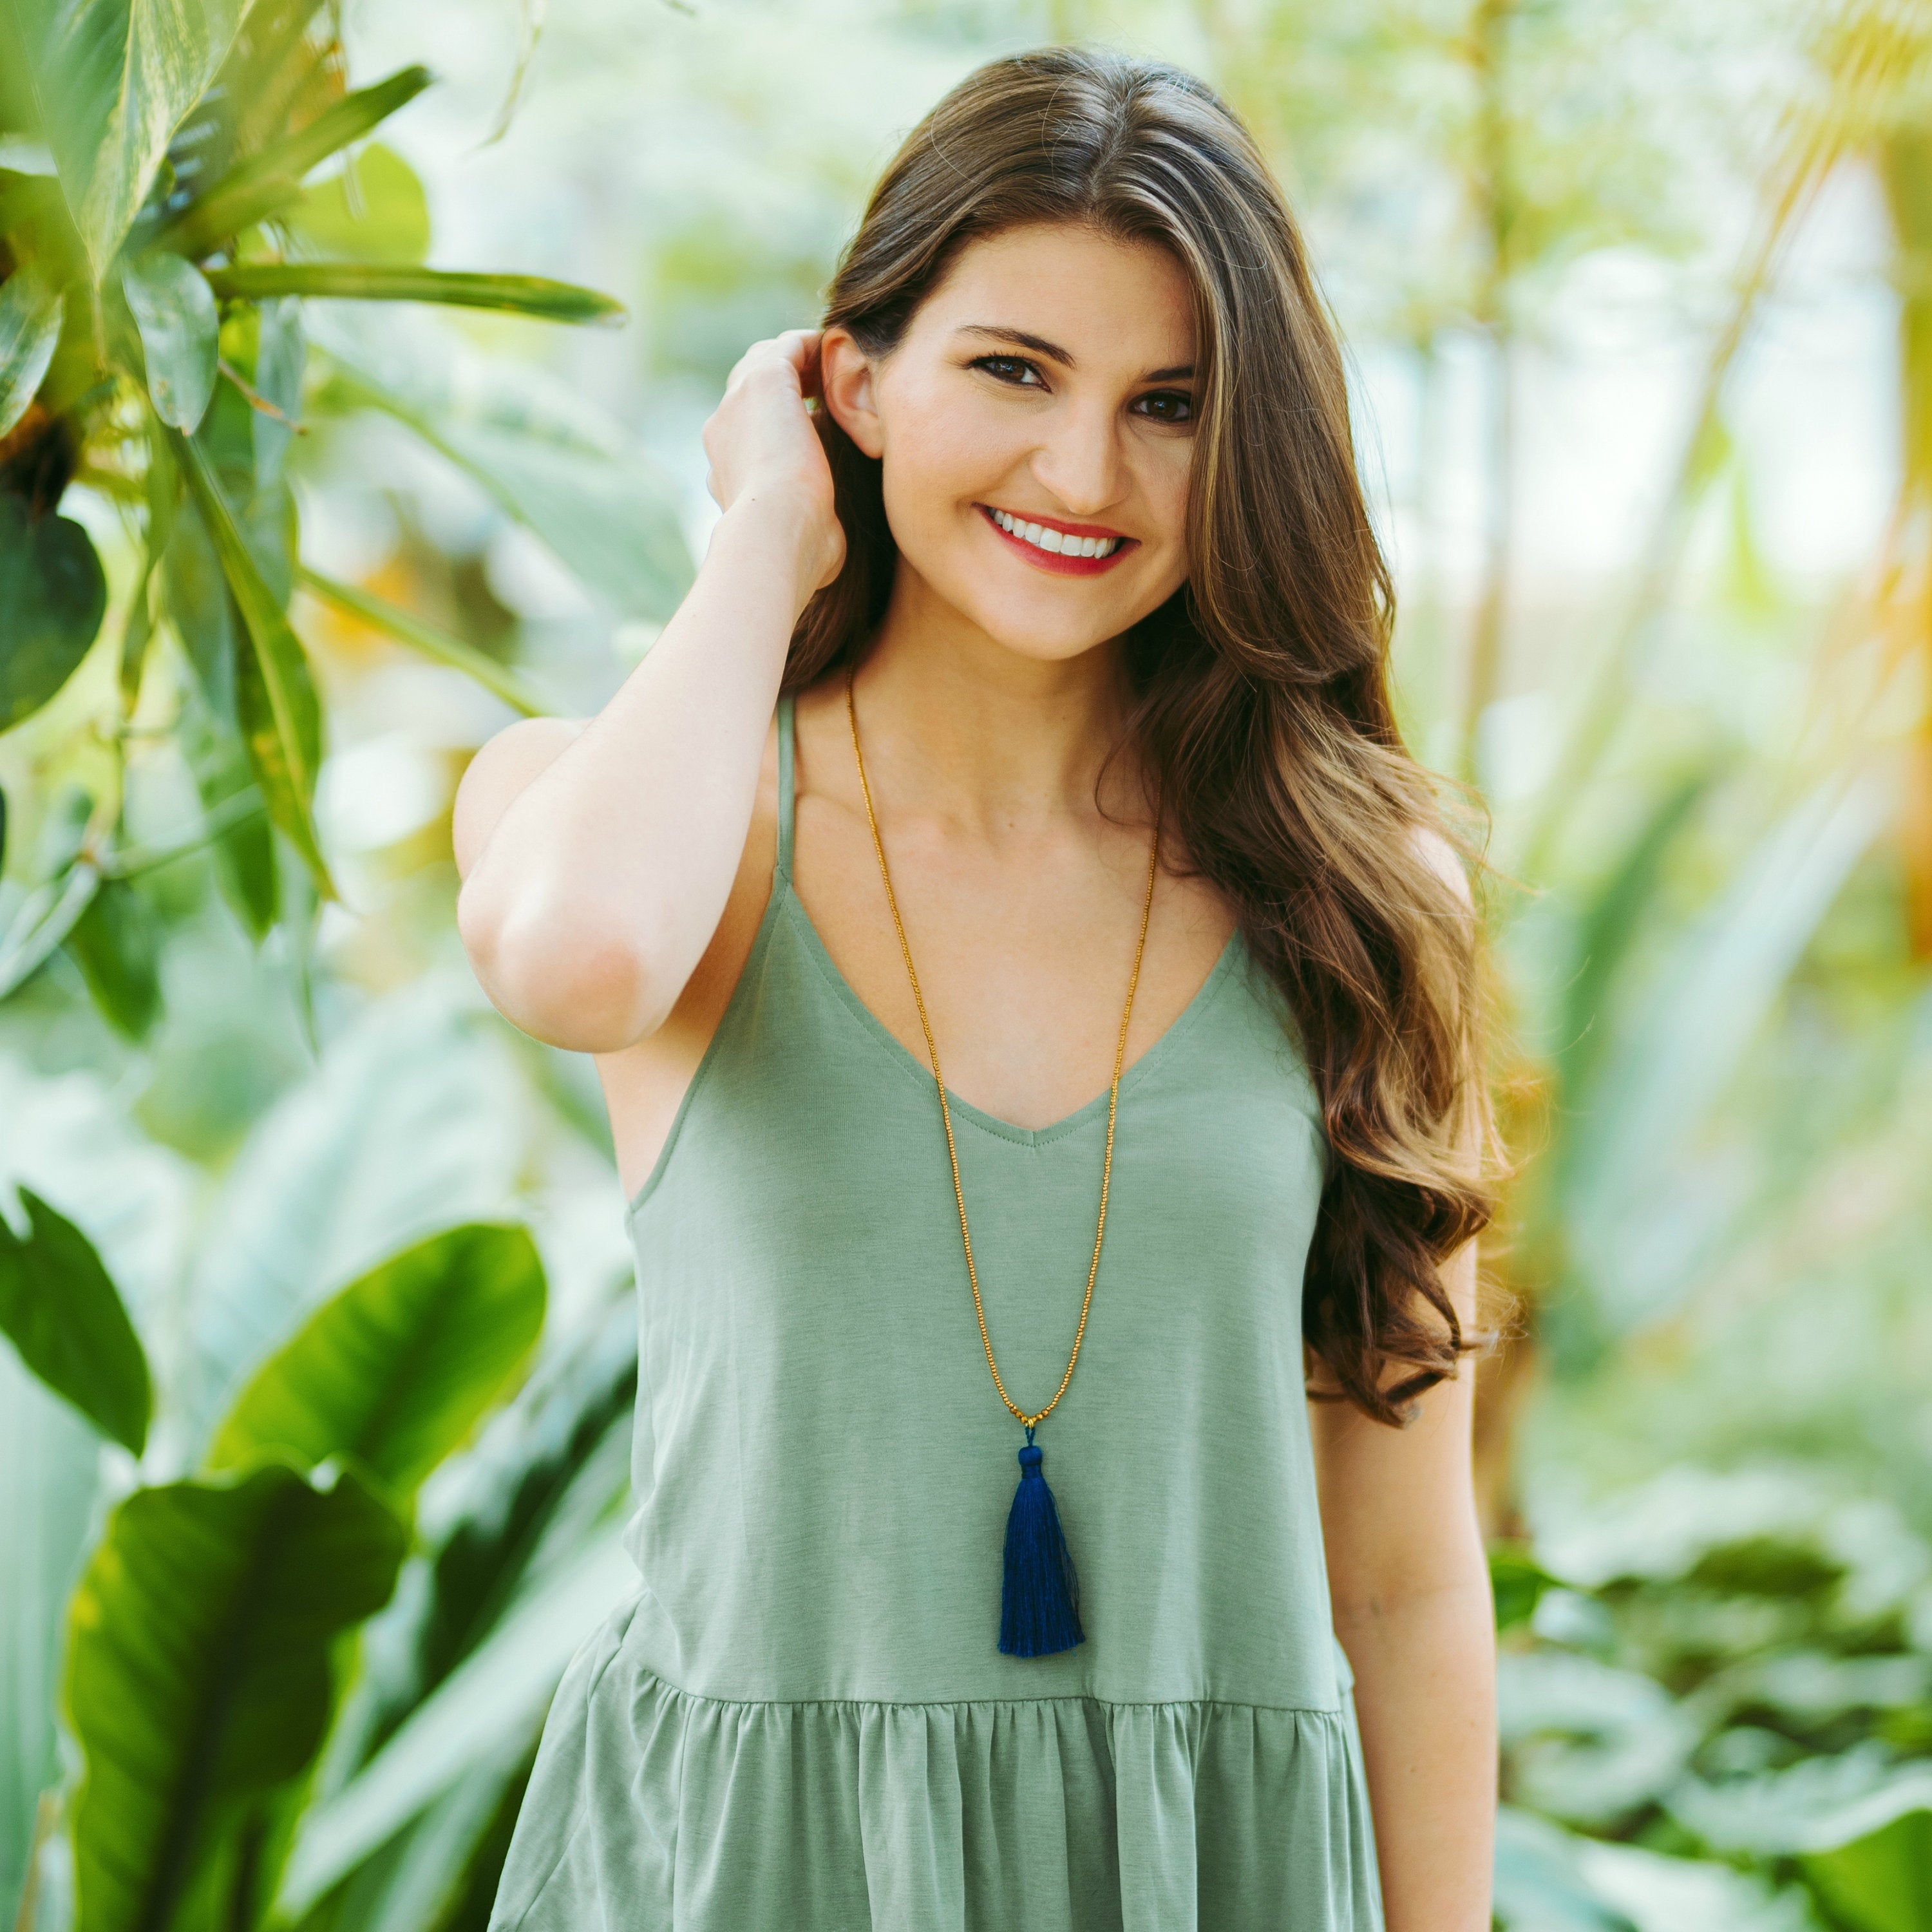 Libby & Smee Navy Blue Tassel Necklace, On Model Smiling at Camera